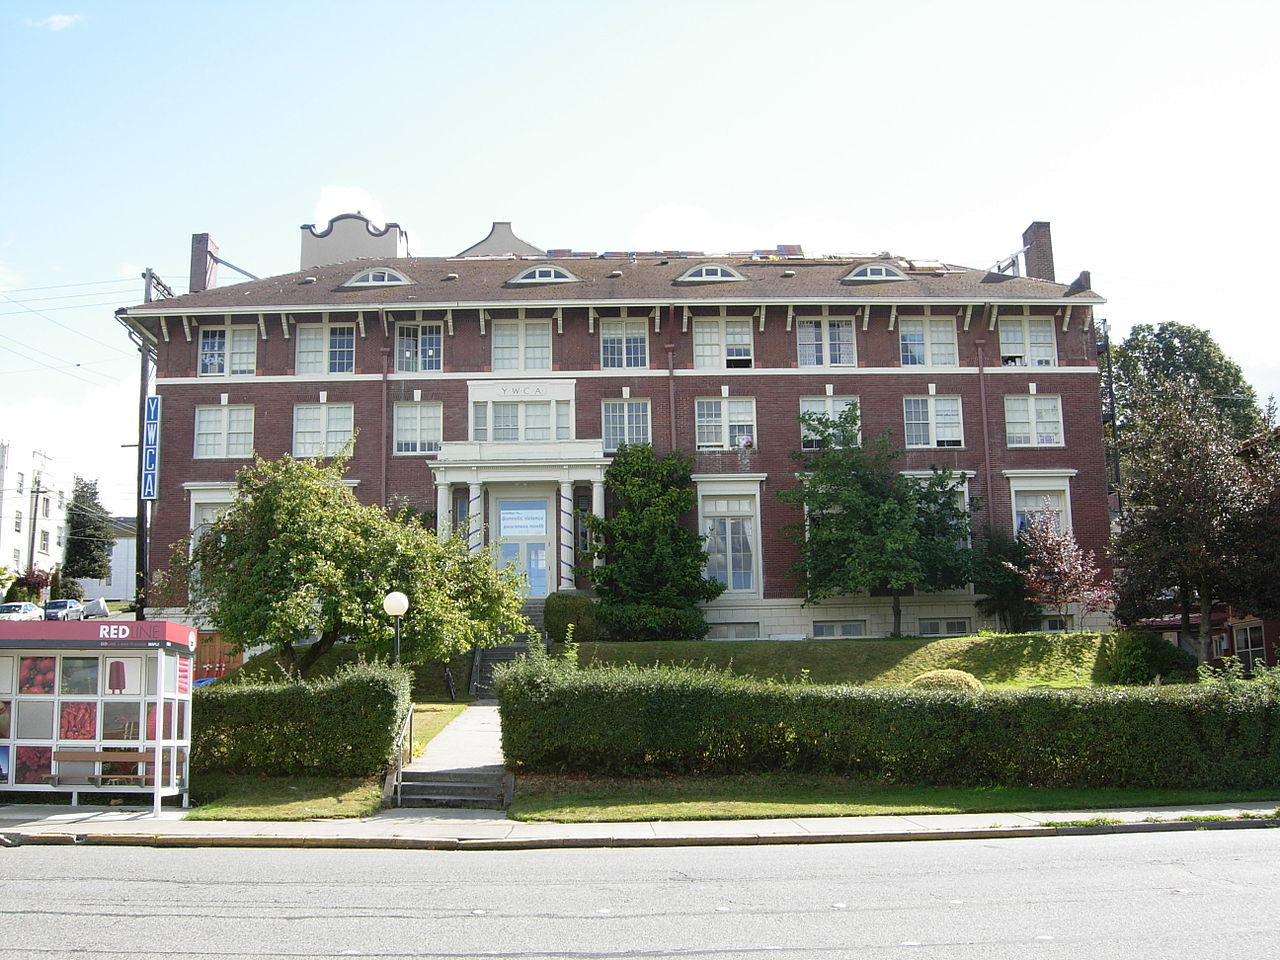 Built in 1915, the YWCA Building is a fine example of Colonial Revival architecture. Here, the YWCA has provided housing and services to women and girls for over a century.